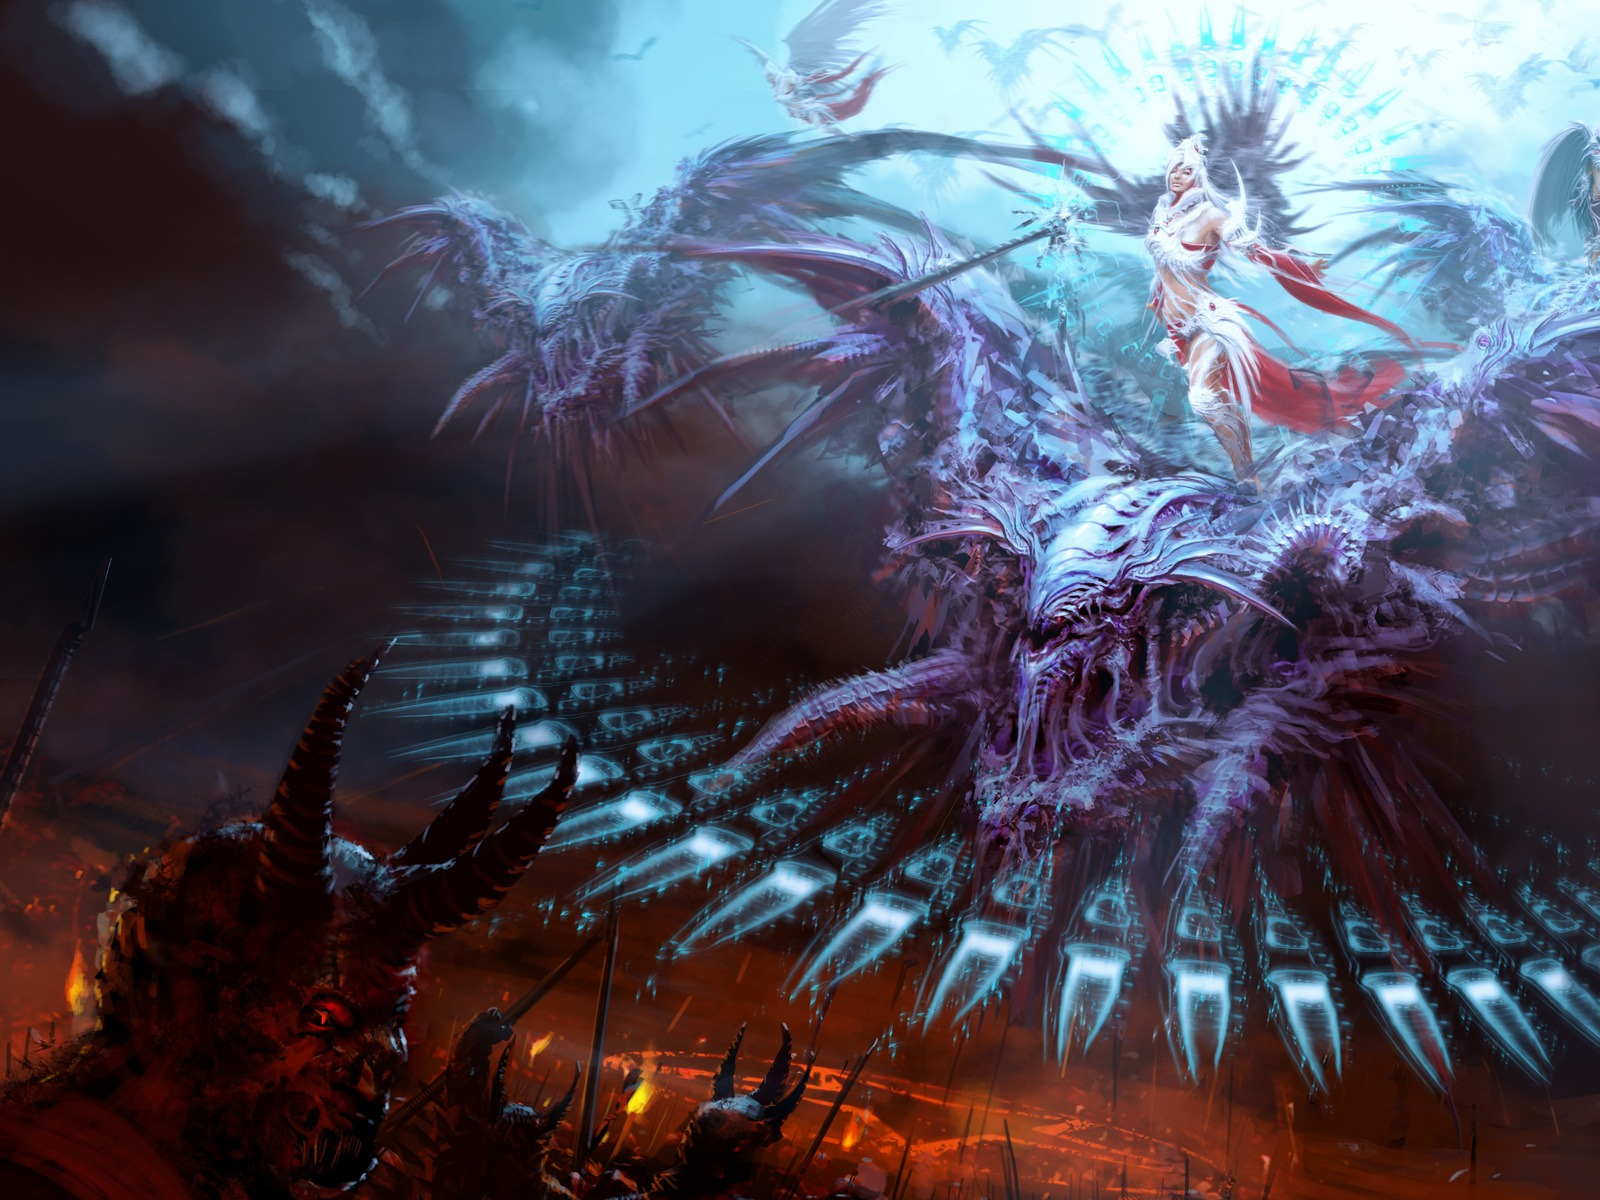 Backgrounds The Spectacular War Between Angels And Demons Wallpapers 1600x1200